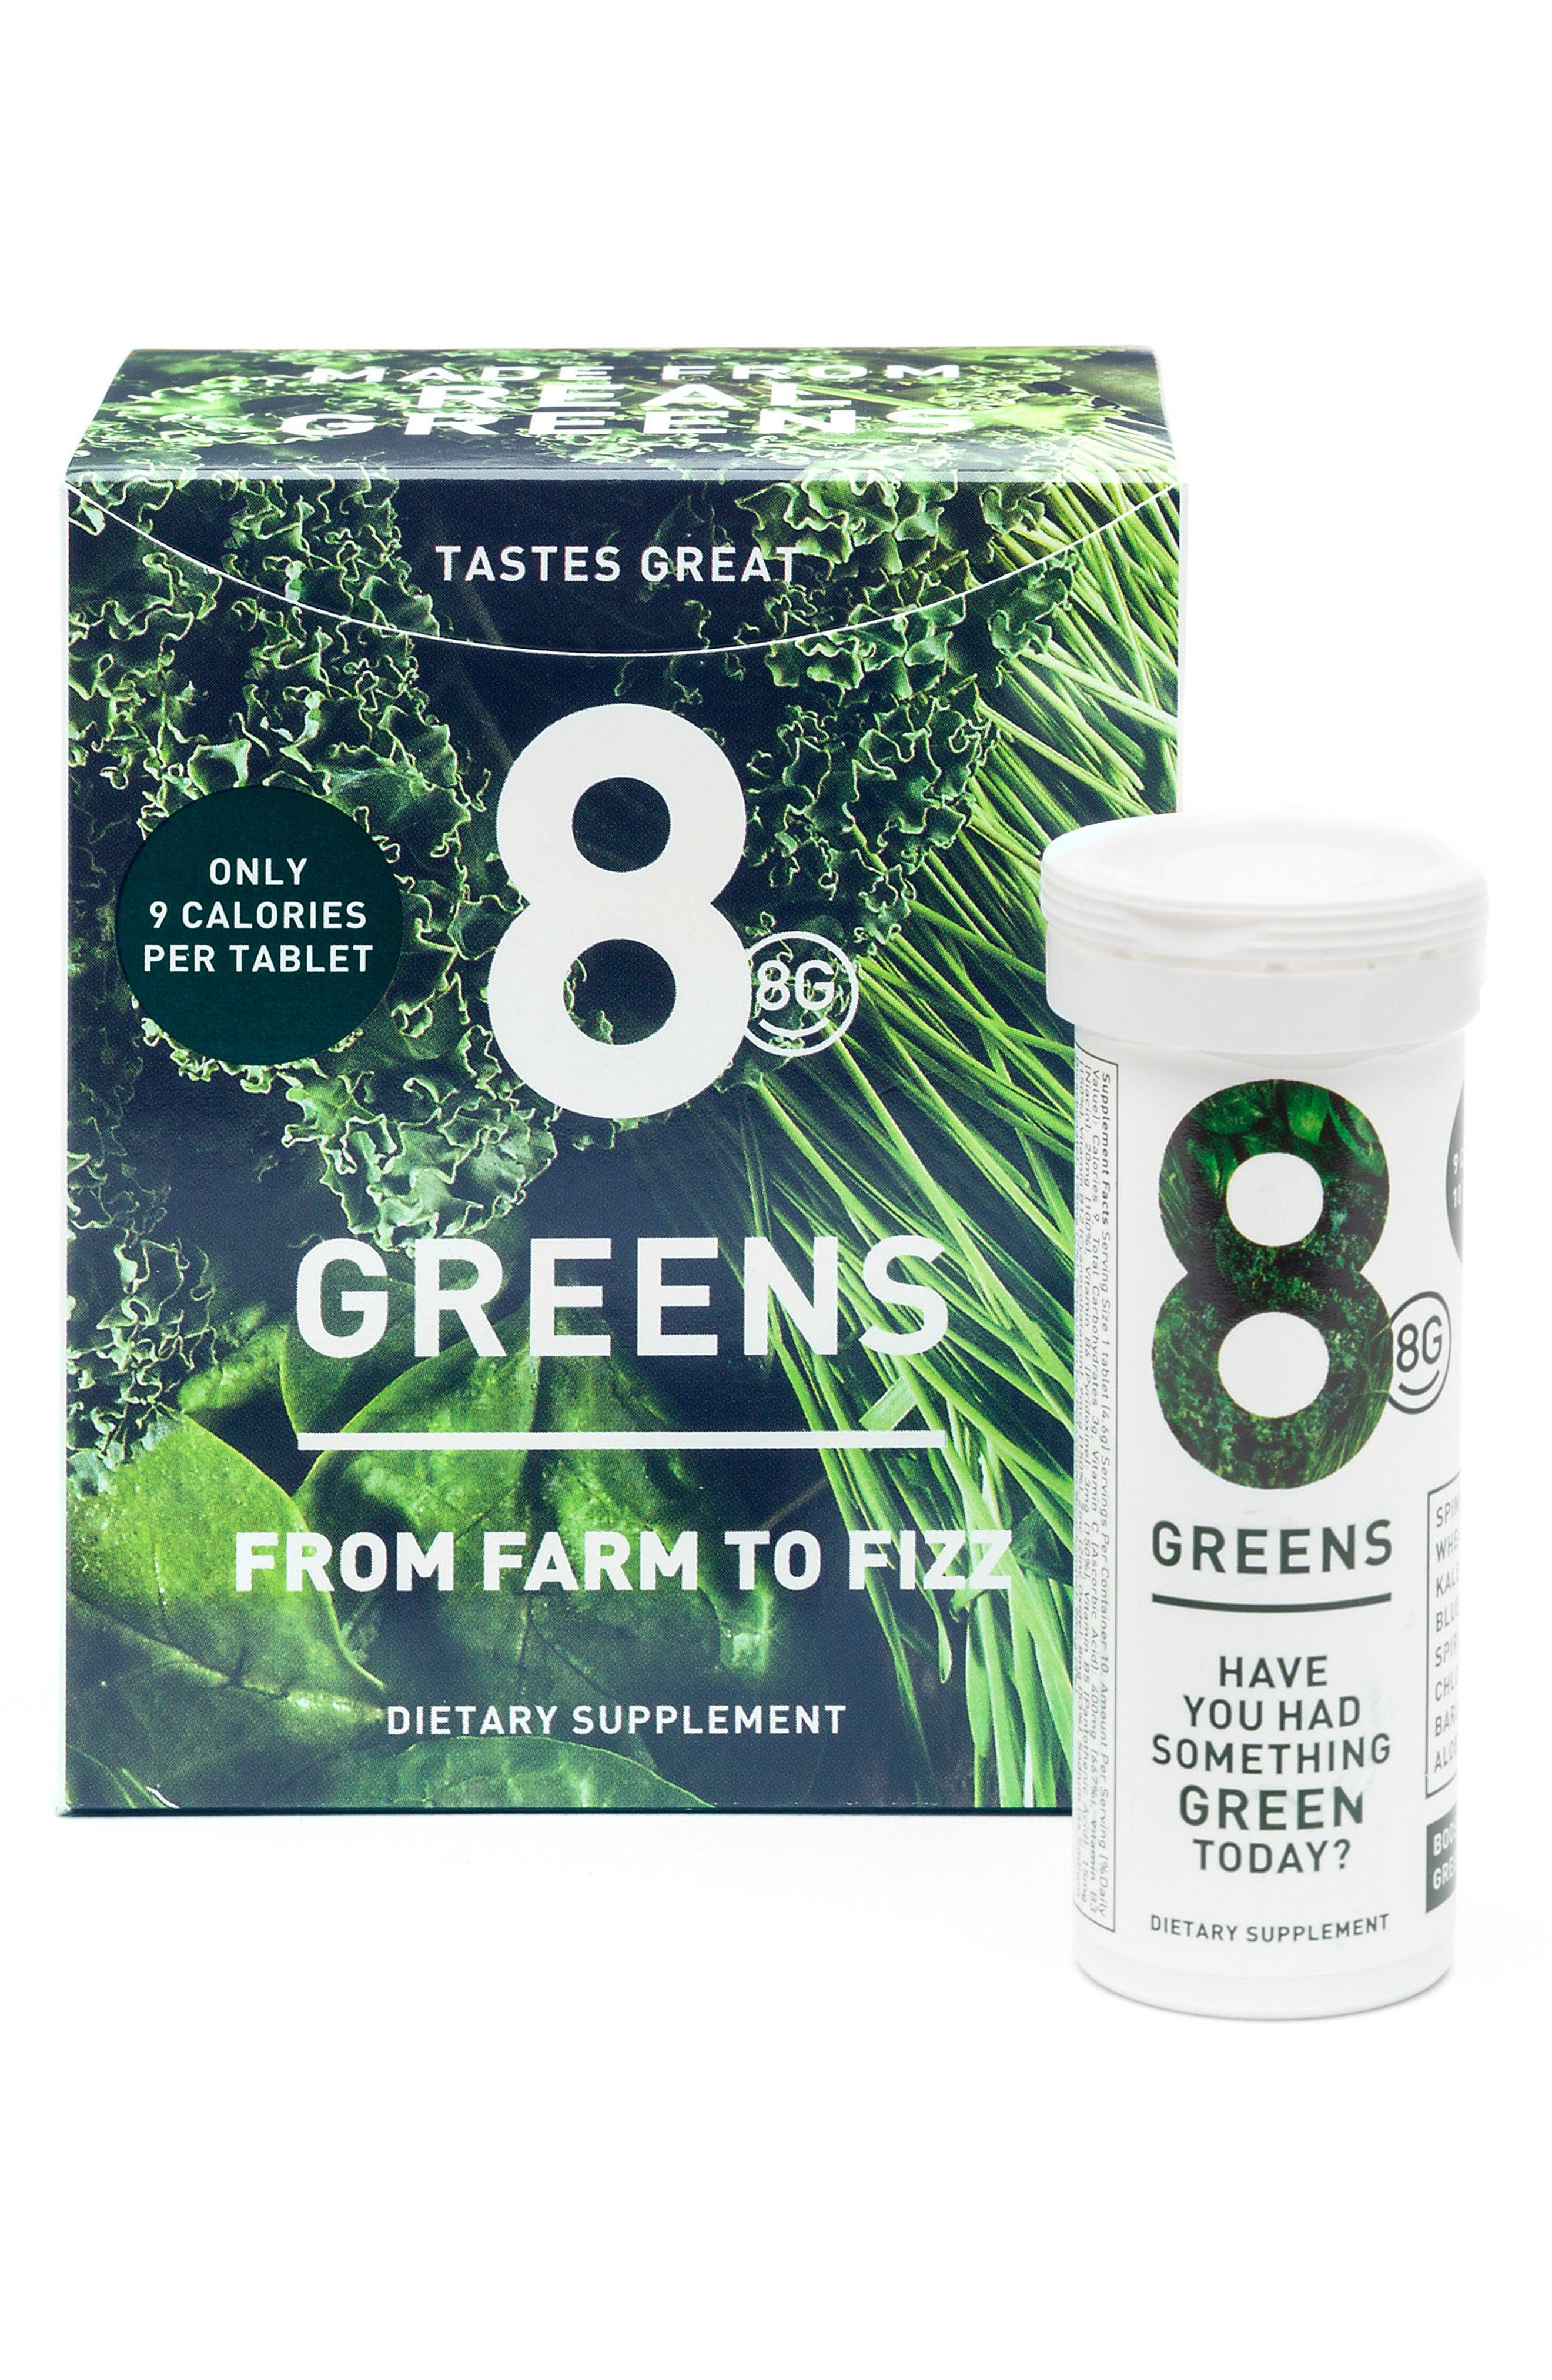 8G Greens 6-Pack Dietary Supplement